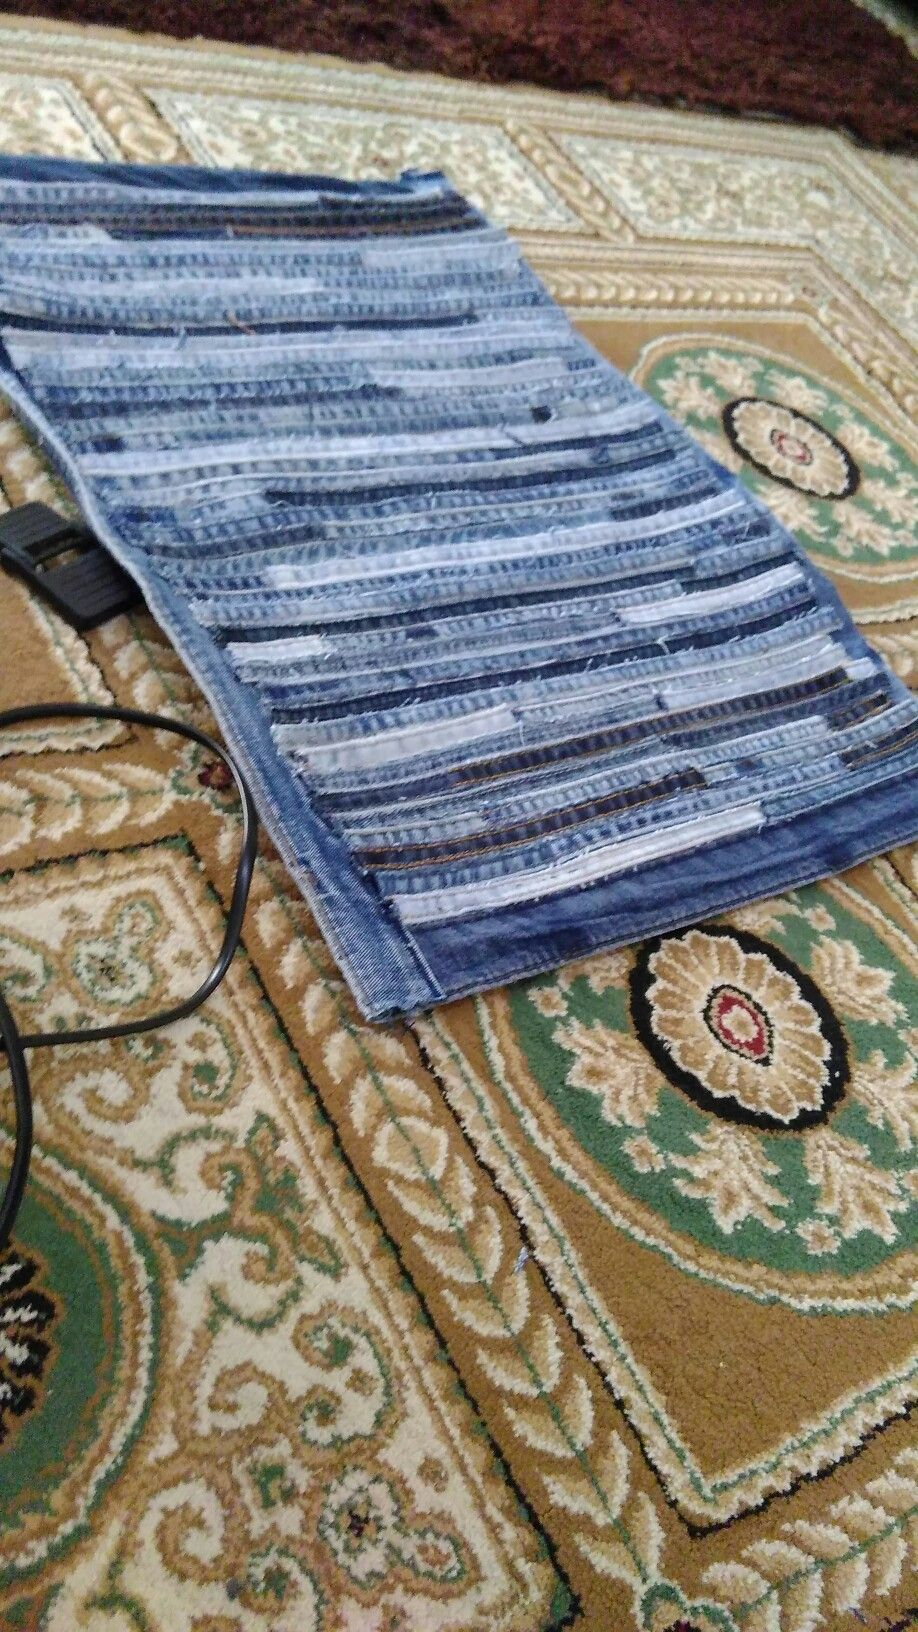 Bath mat DIY old jeans | My Own Creation | Pinterest